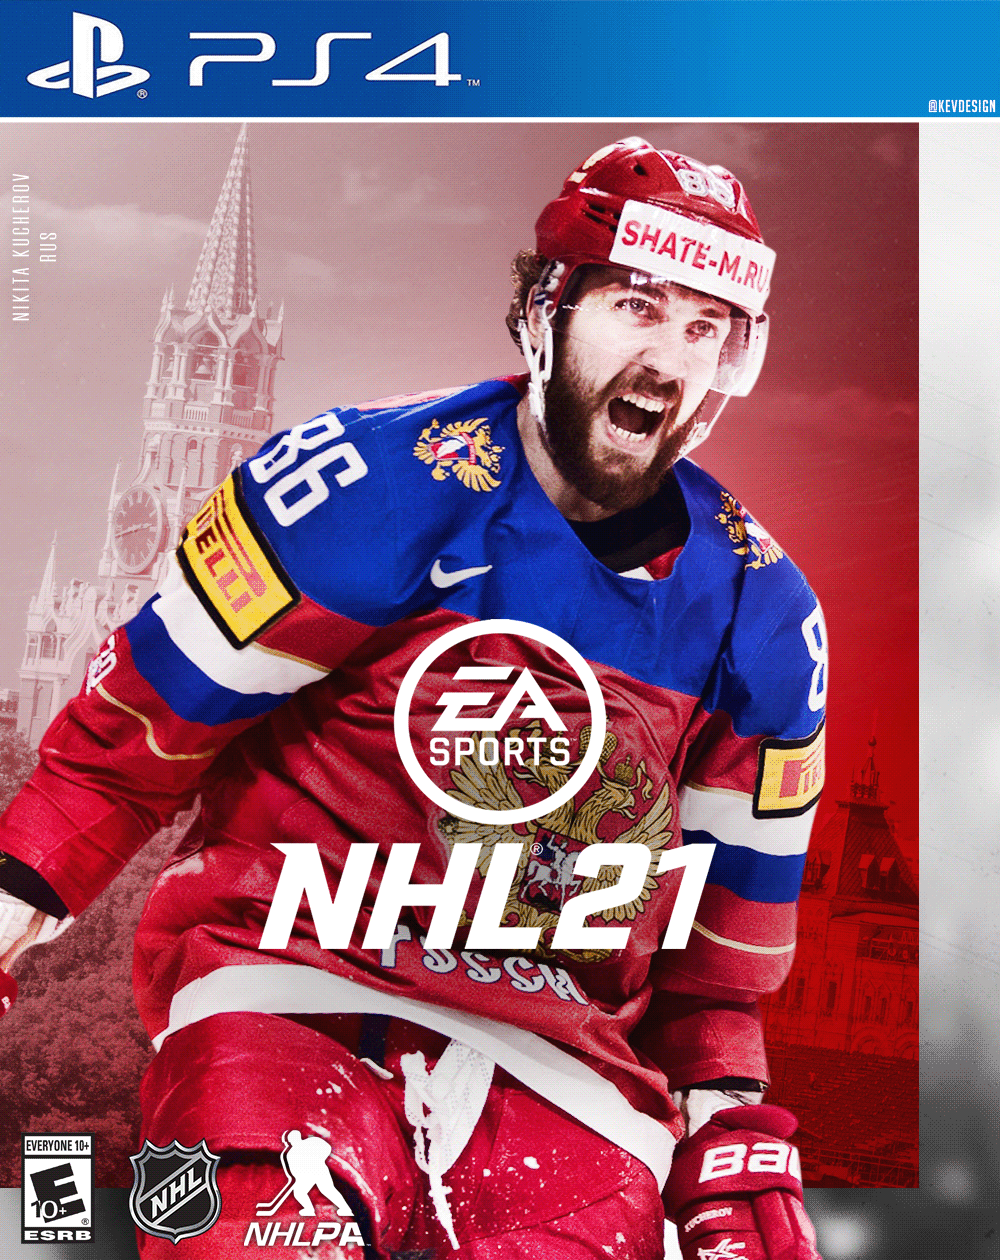 Nhl 21 Covers On Behance